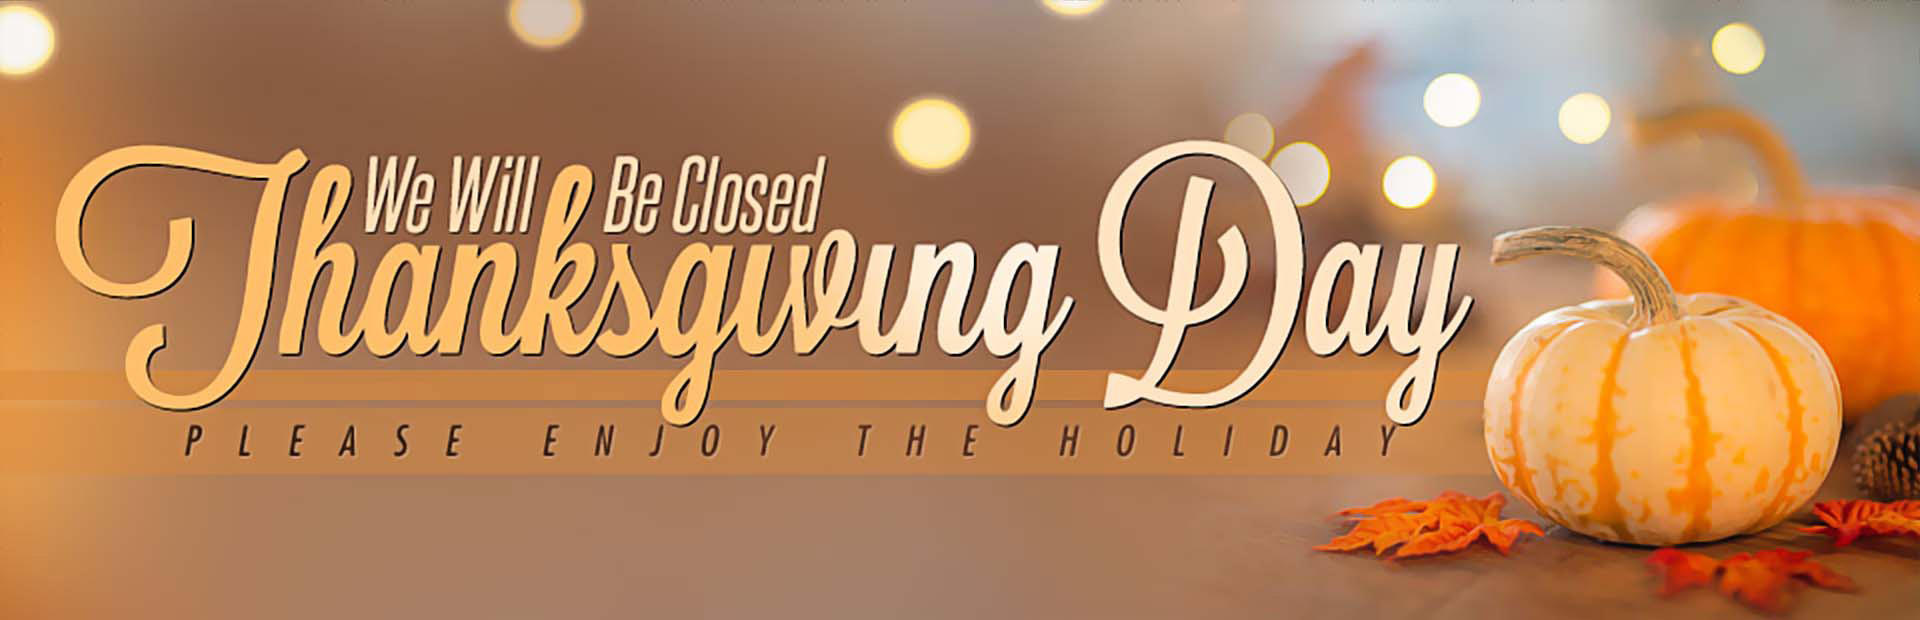 We will be closed Thanksgiving Day. Please enjoy the holiday.